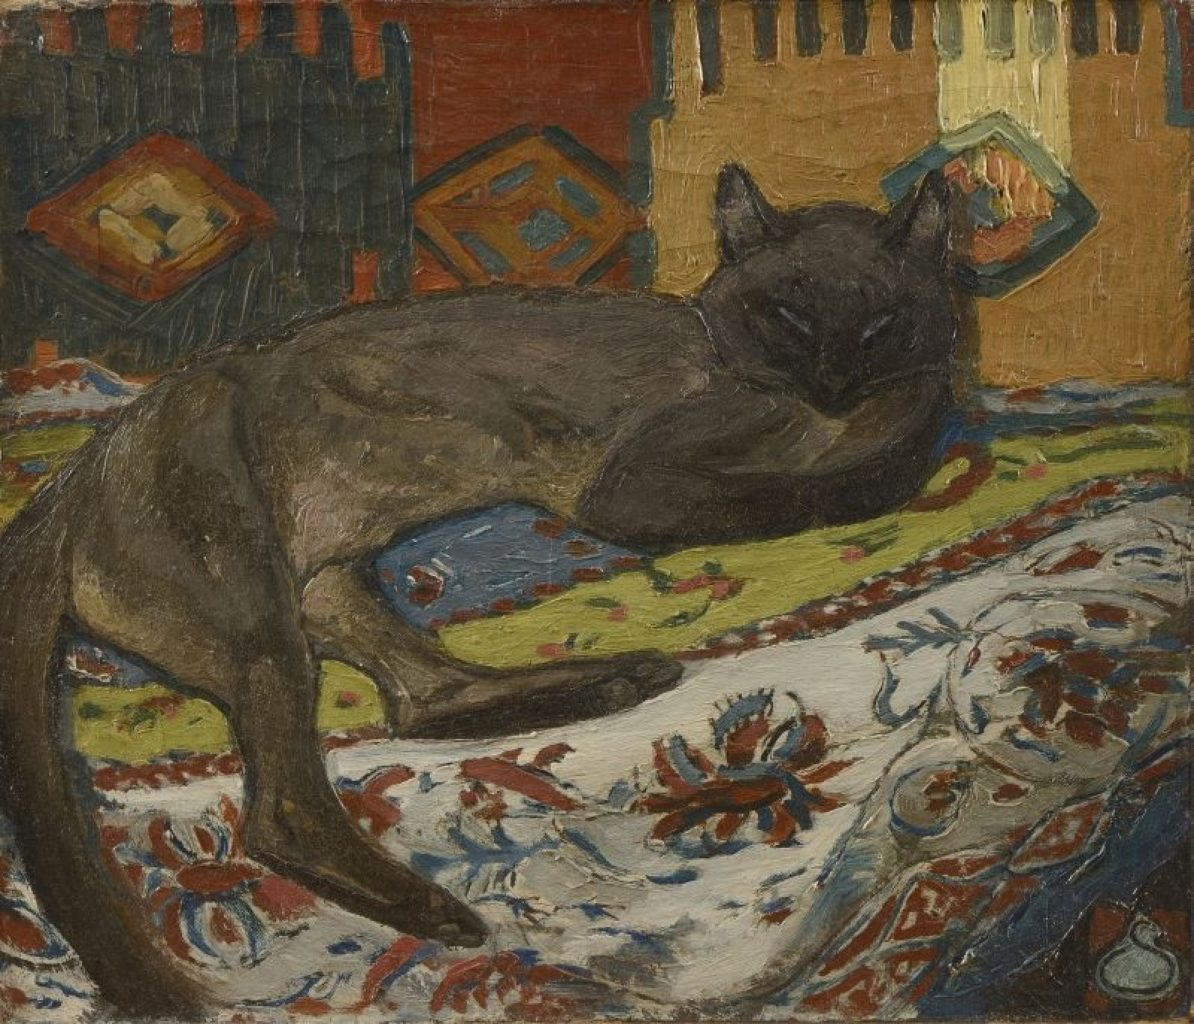 Cat on a Blanket, Theophile Steinlen